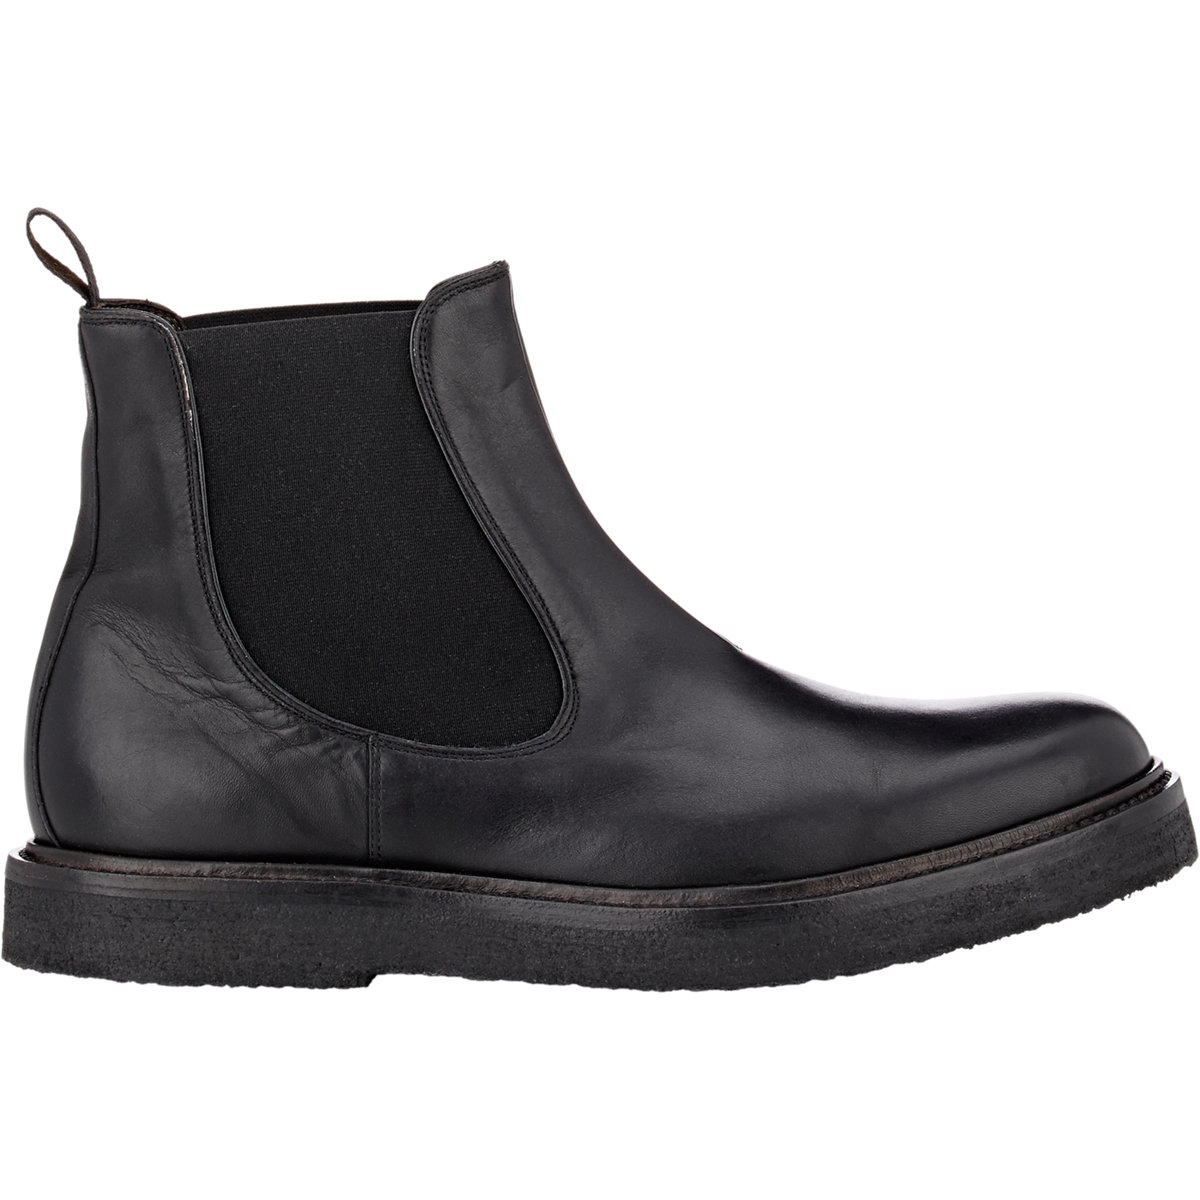 BARNEYS NEW YORK Distressed Leather Chelsea Boots